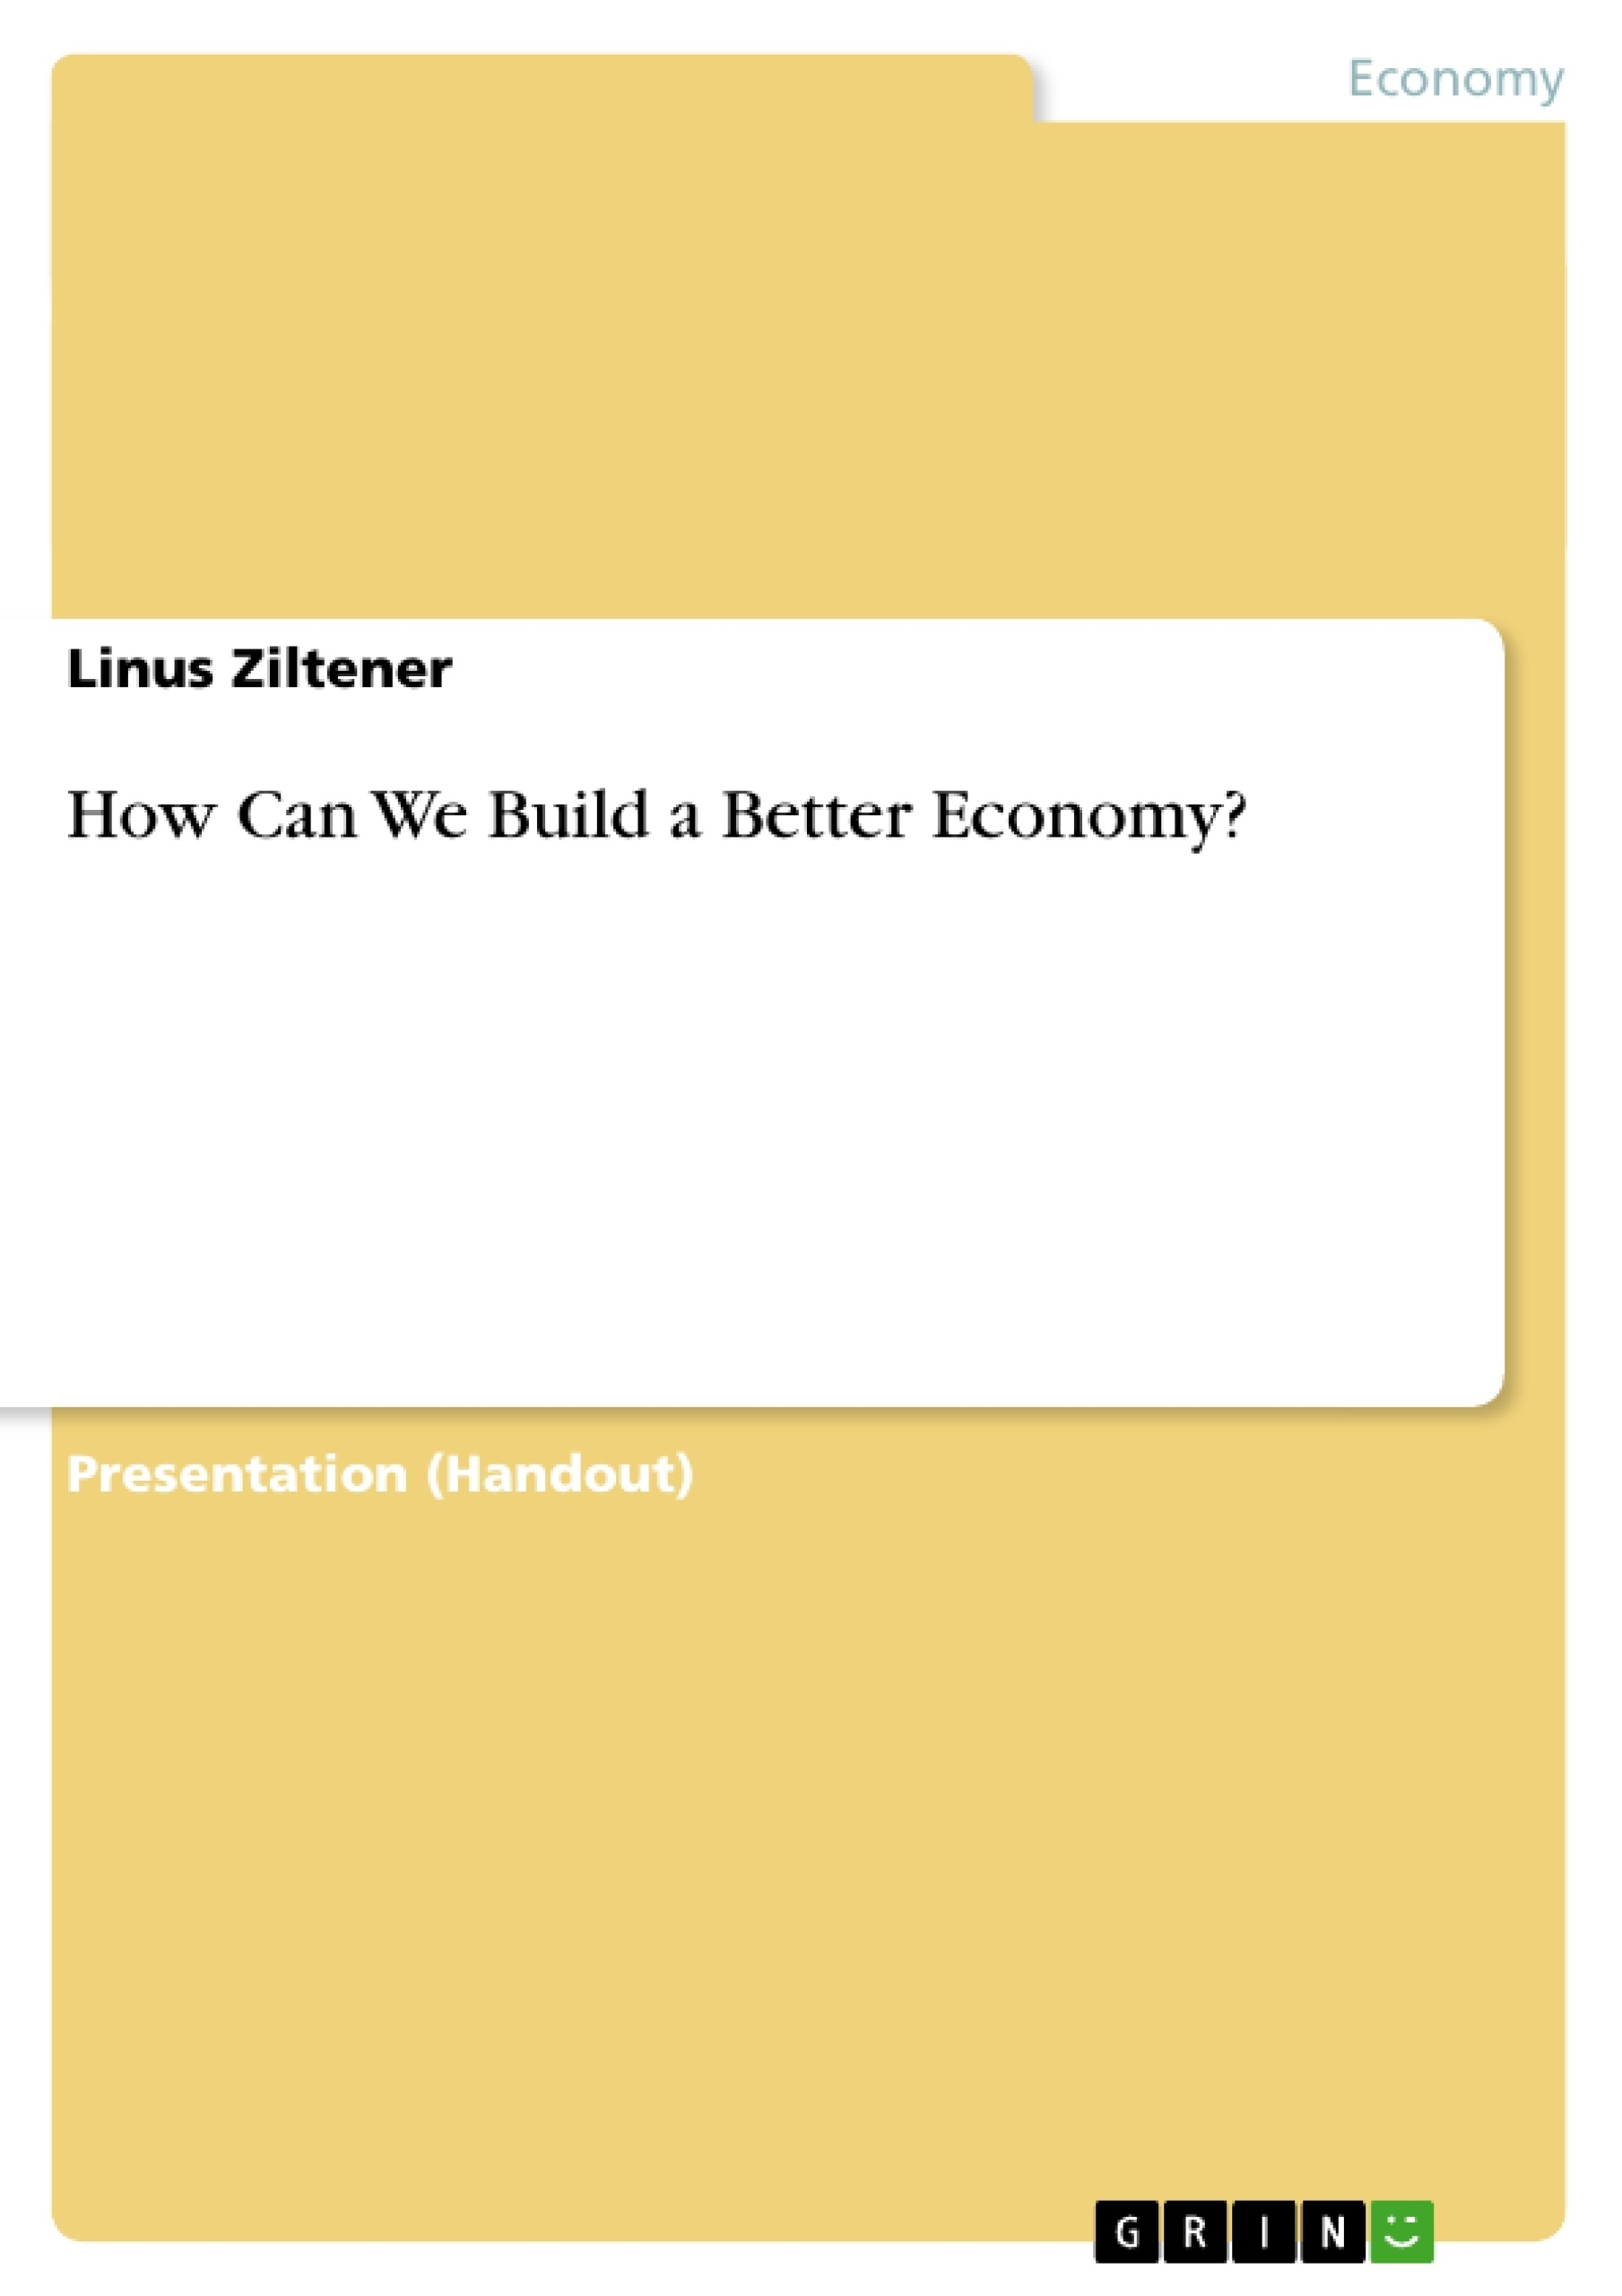 Title: How Can We Build a Better Economy?